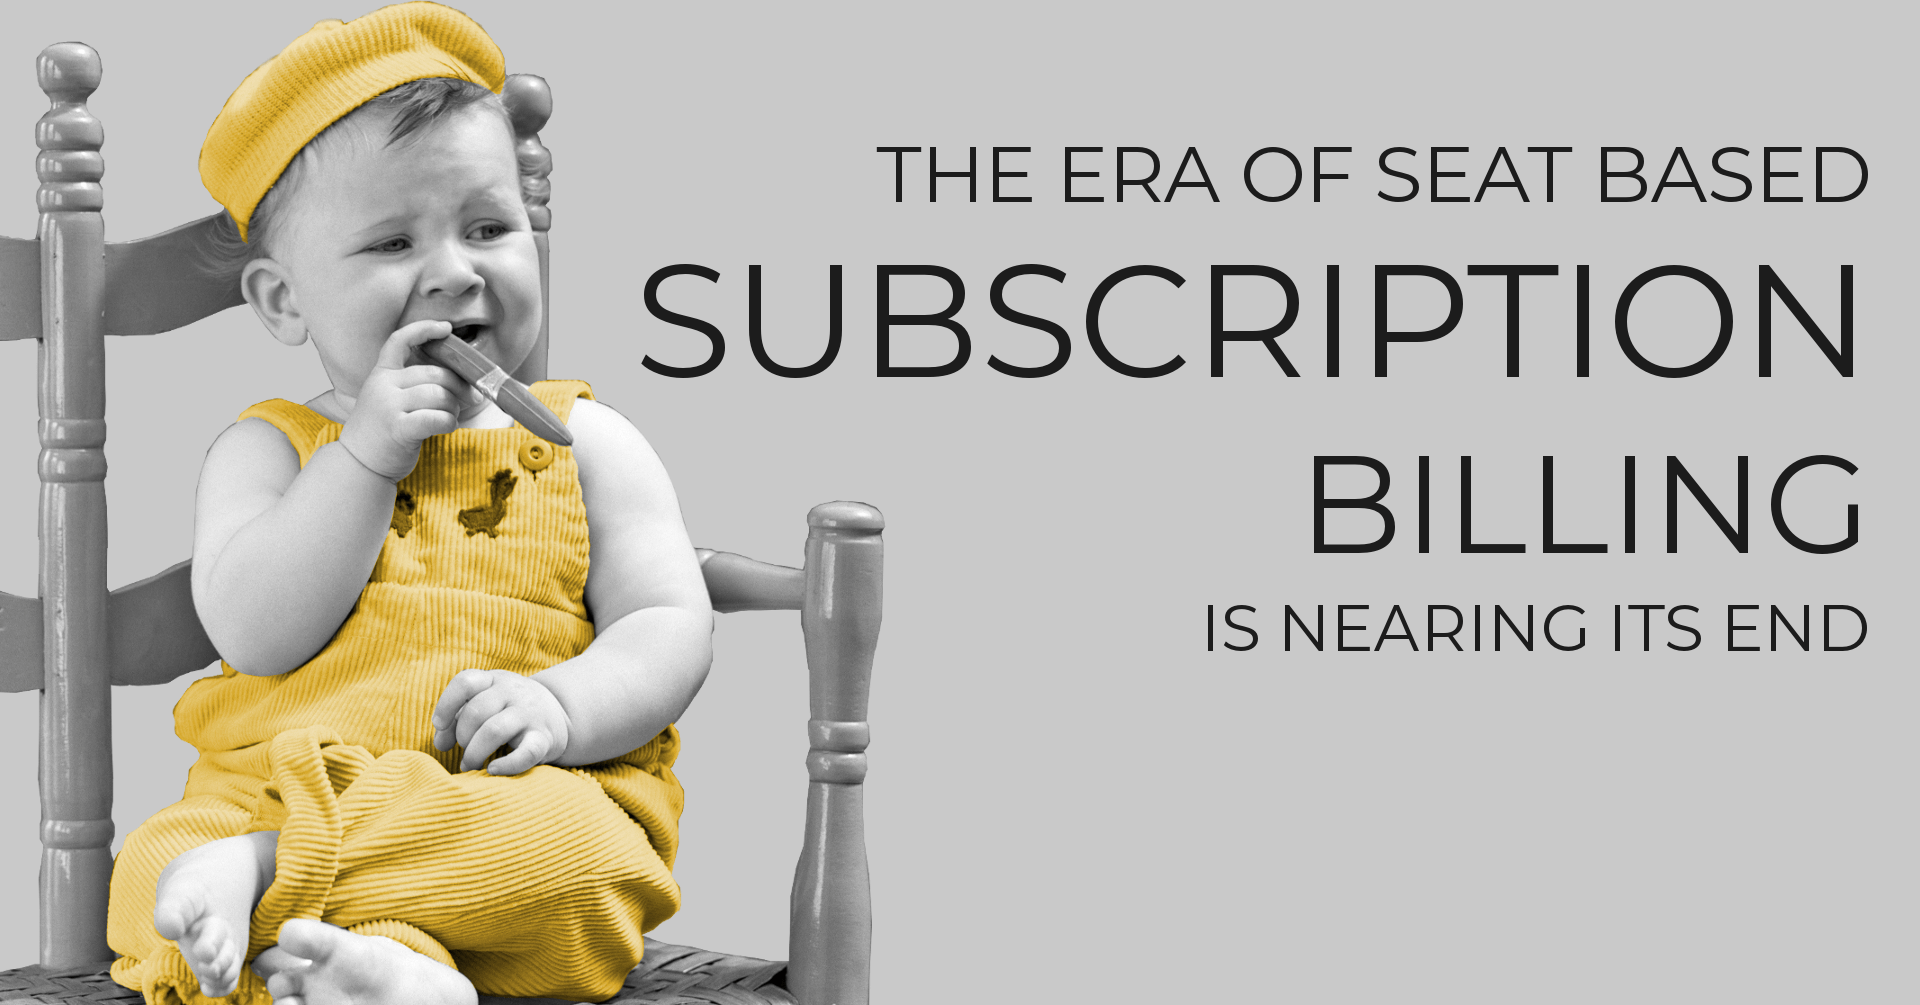 The Era of Seat Based Subscription Billing is Nearing its End